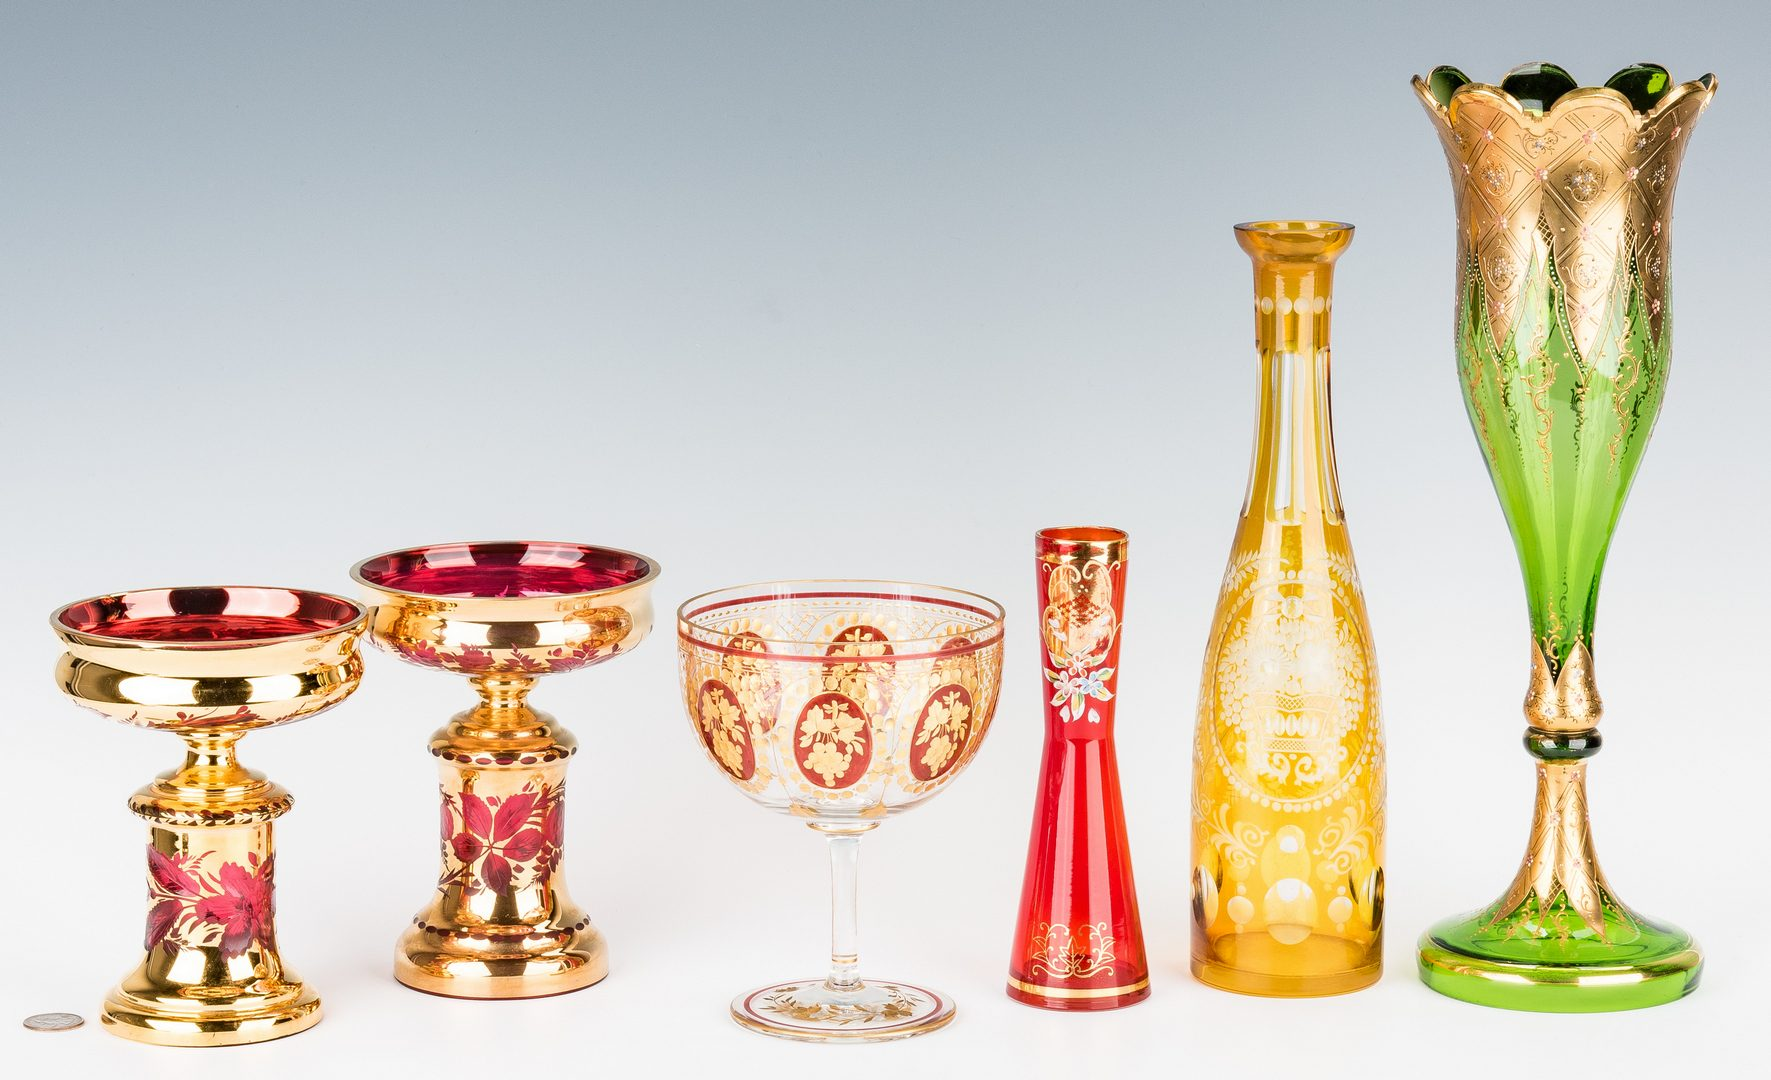 Lot 217: 6 Gilt & Enameled Art Glass Items